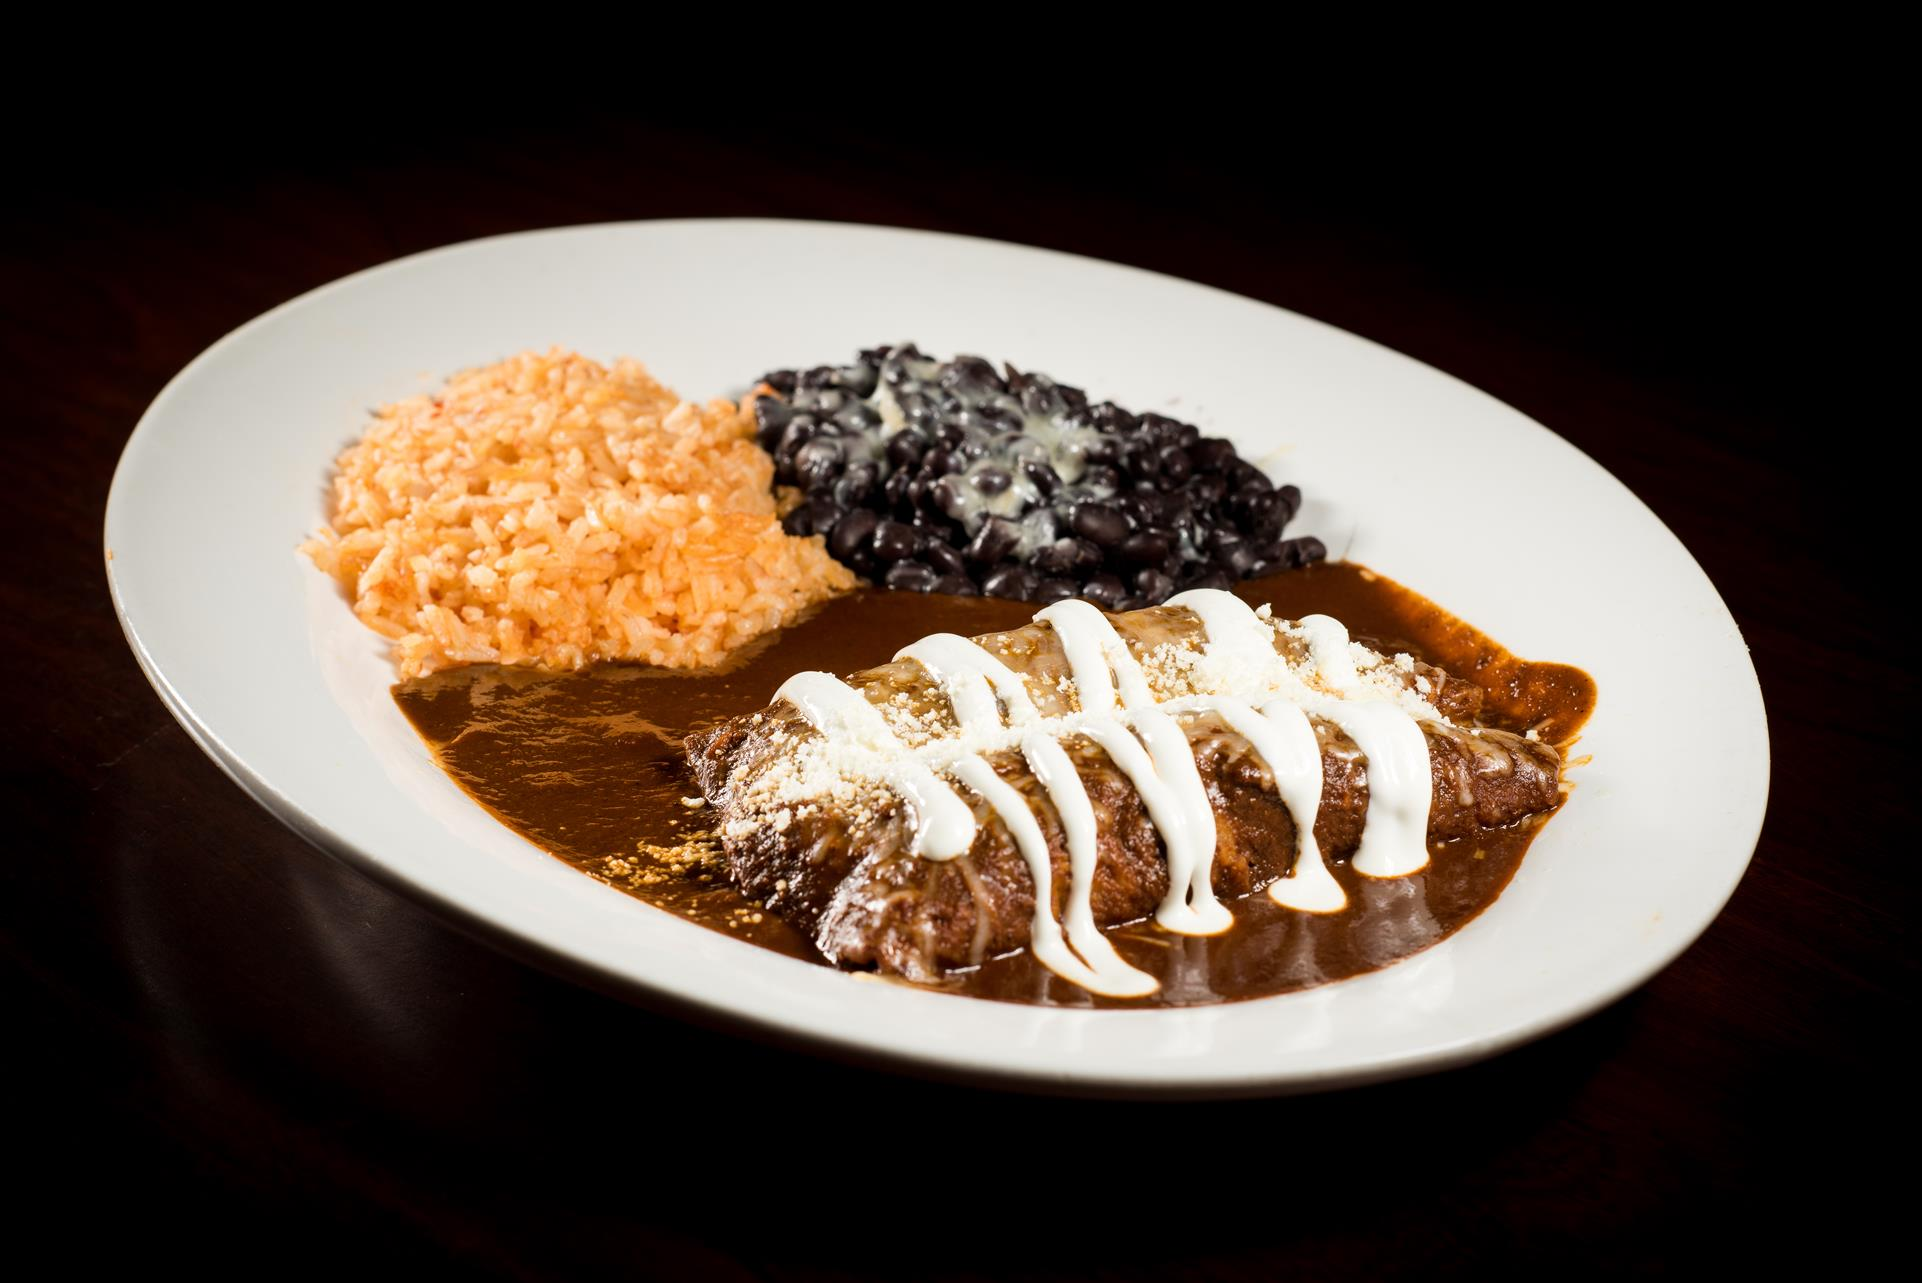 Enchiladas de Mole: Two tortillas rolled and filled with chicken, covered with homemade mole, cheese, onions and sour cream